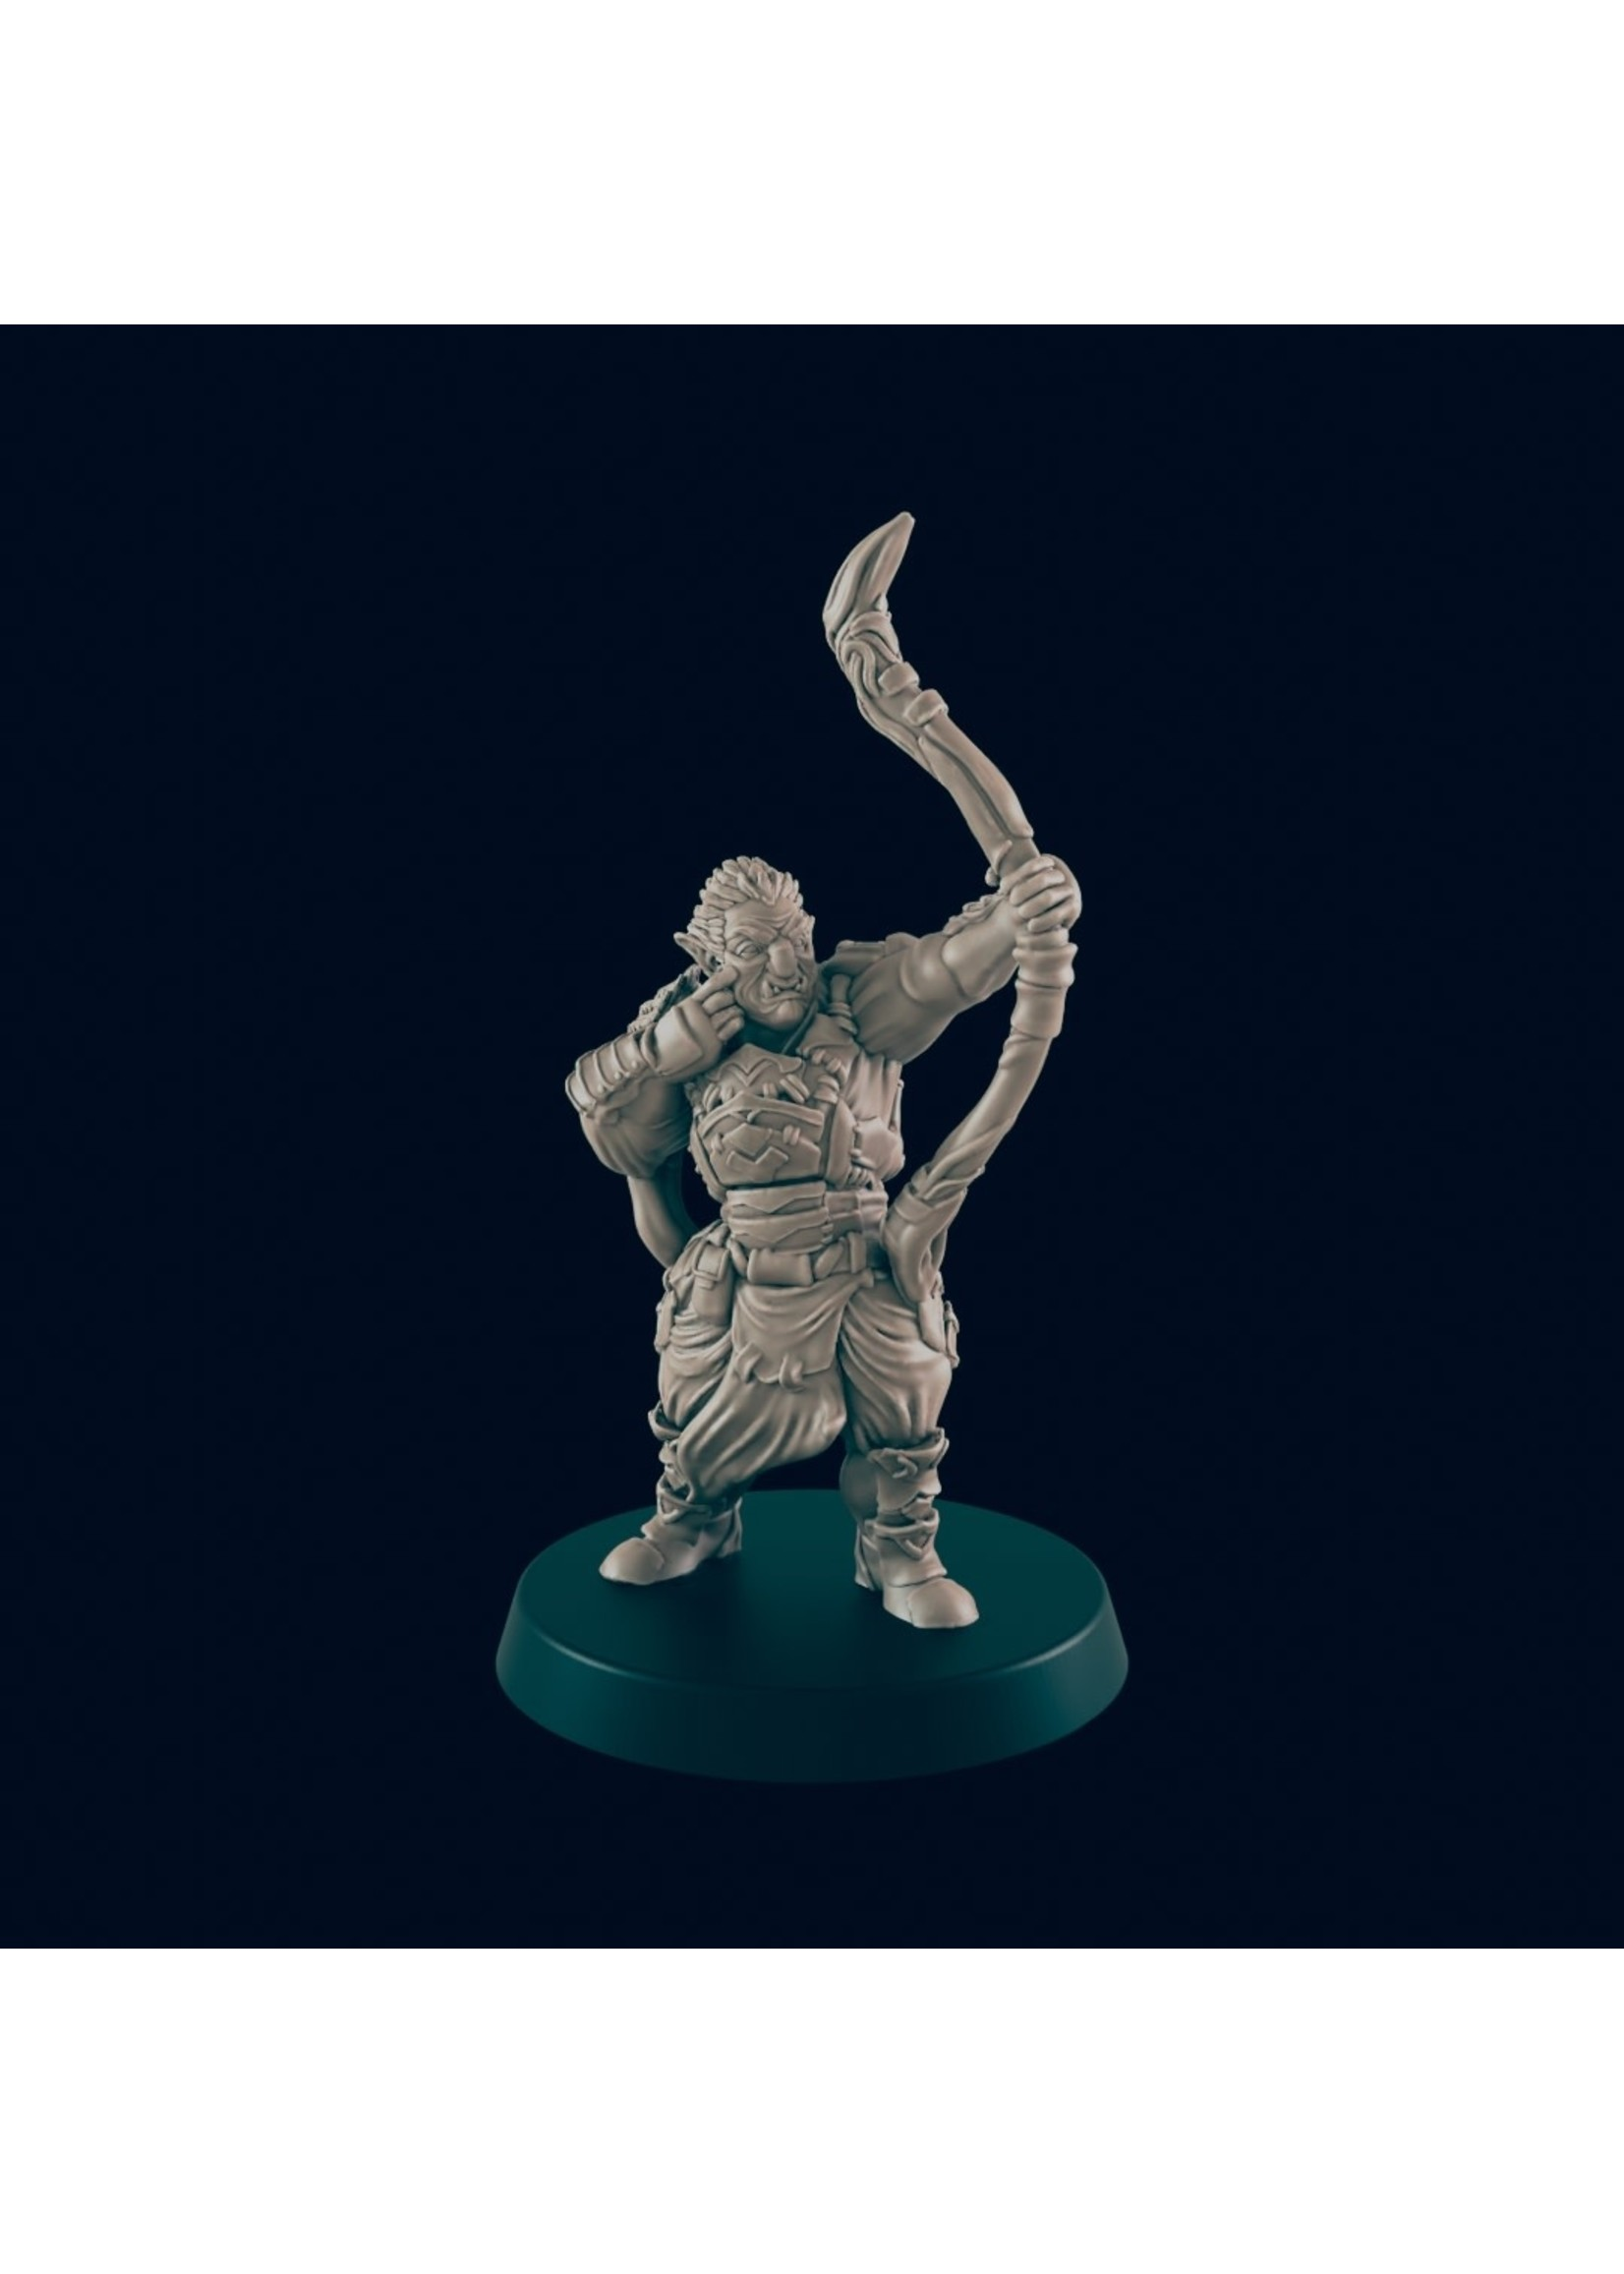 3D Printed Miniature - Hobgoblin 2 - Dungeons & Dragons - Beasts and Baddies KS